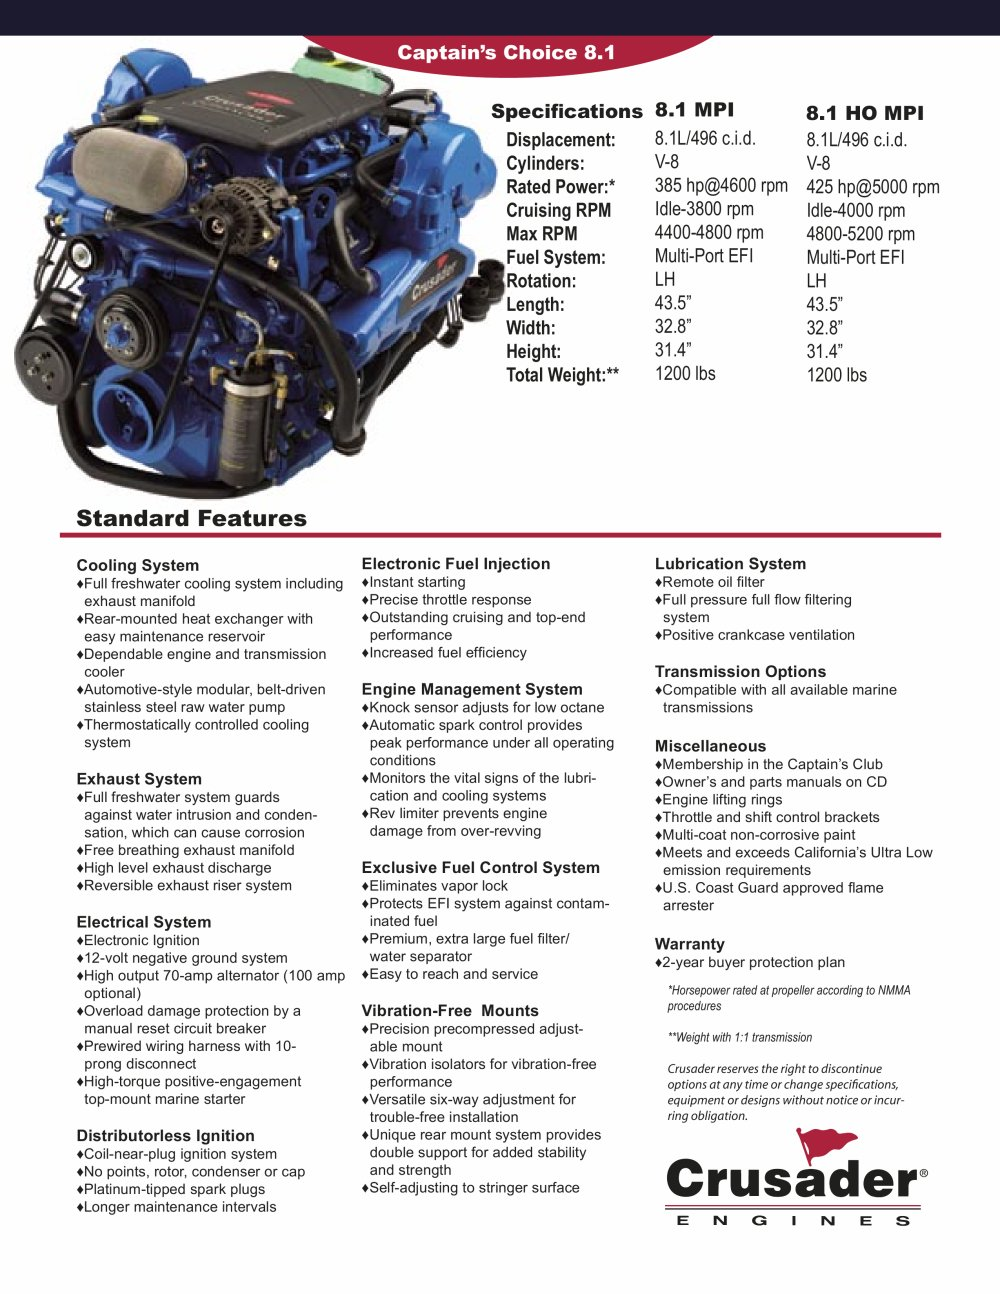 crusader captain s choice 8 1 8 1ho crusader pdf catalogues rh pdf nauticexpo com Crusader 350 Marine Engine Specifications Crusader 5.7 Marine Engines Complete